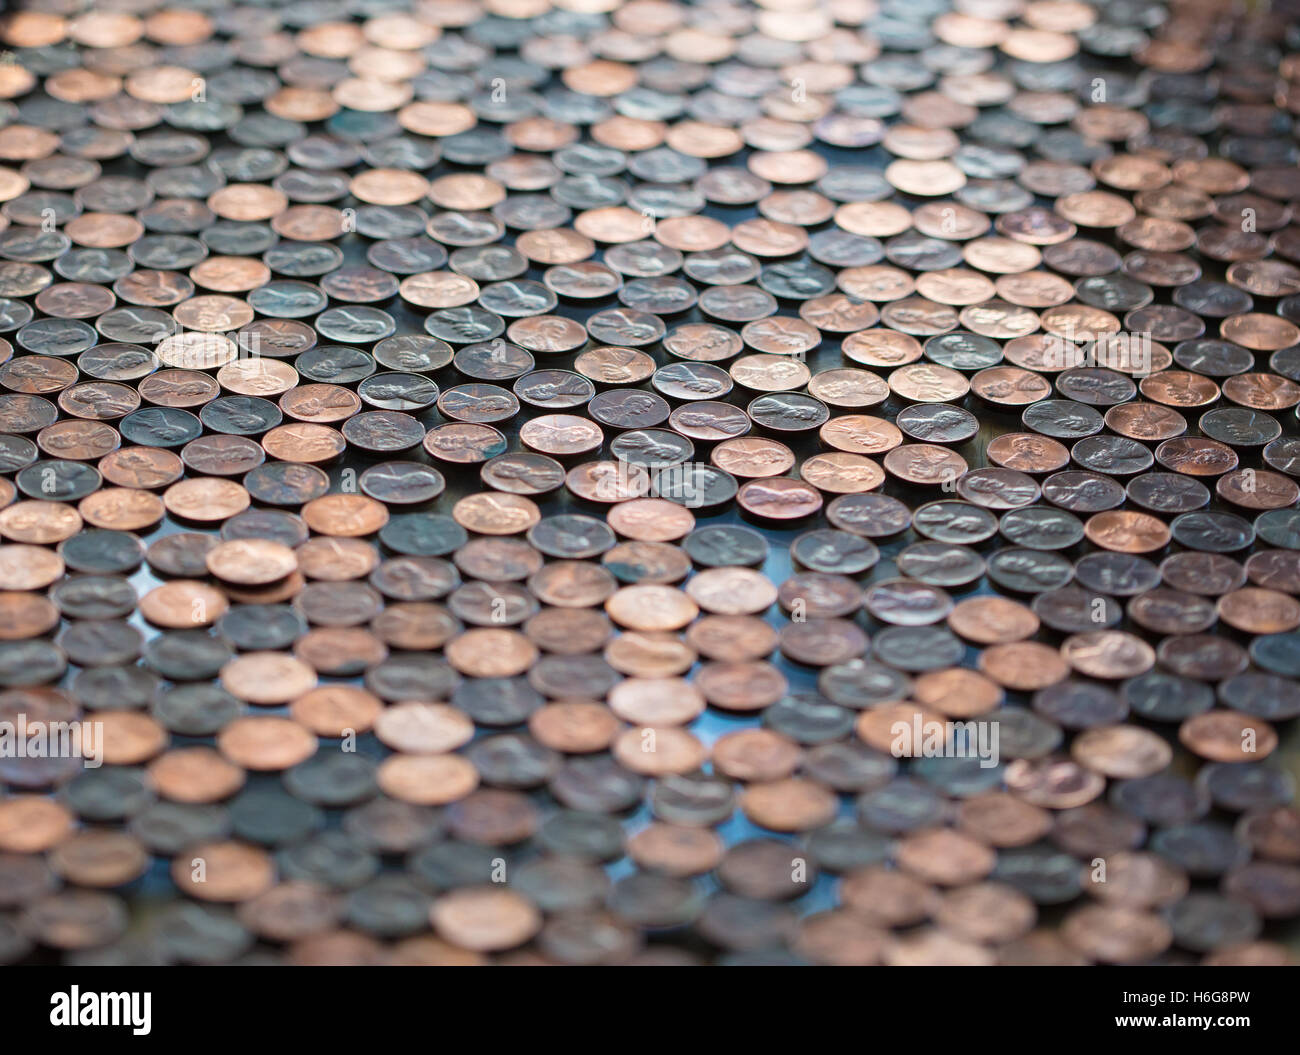 Large group of pennies with short depth of field for a background Stock Photo